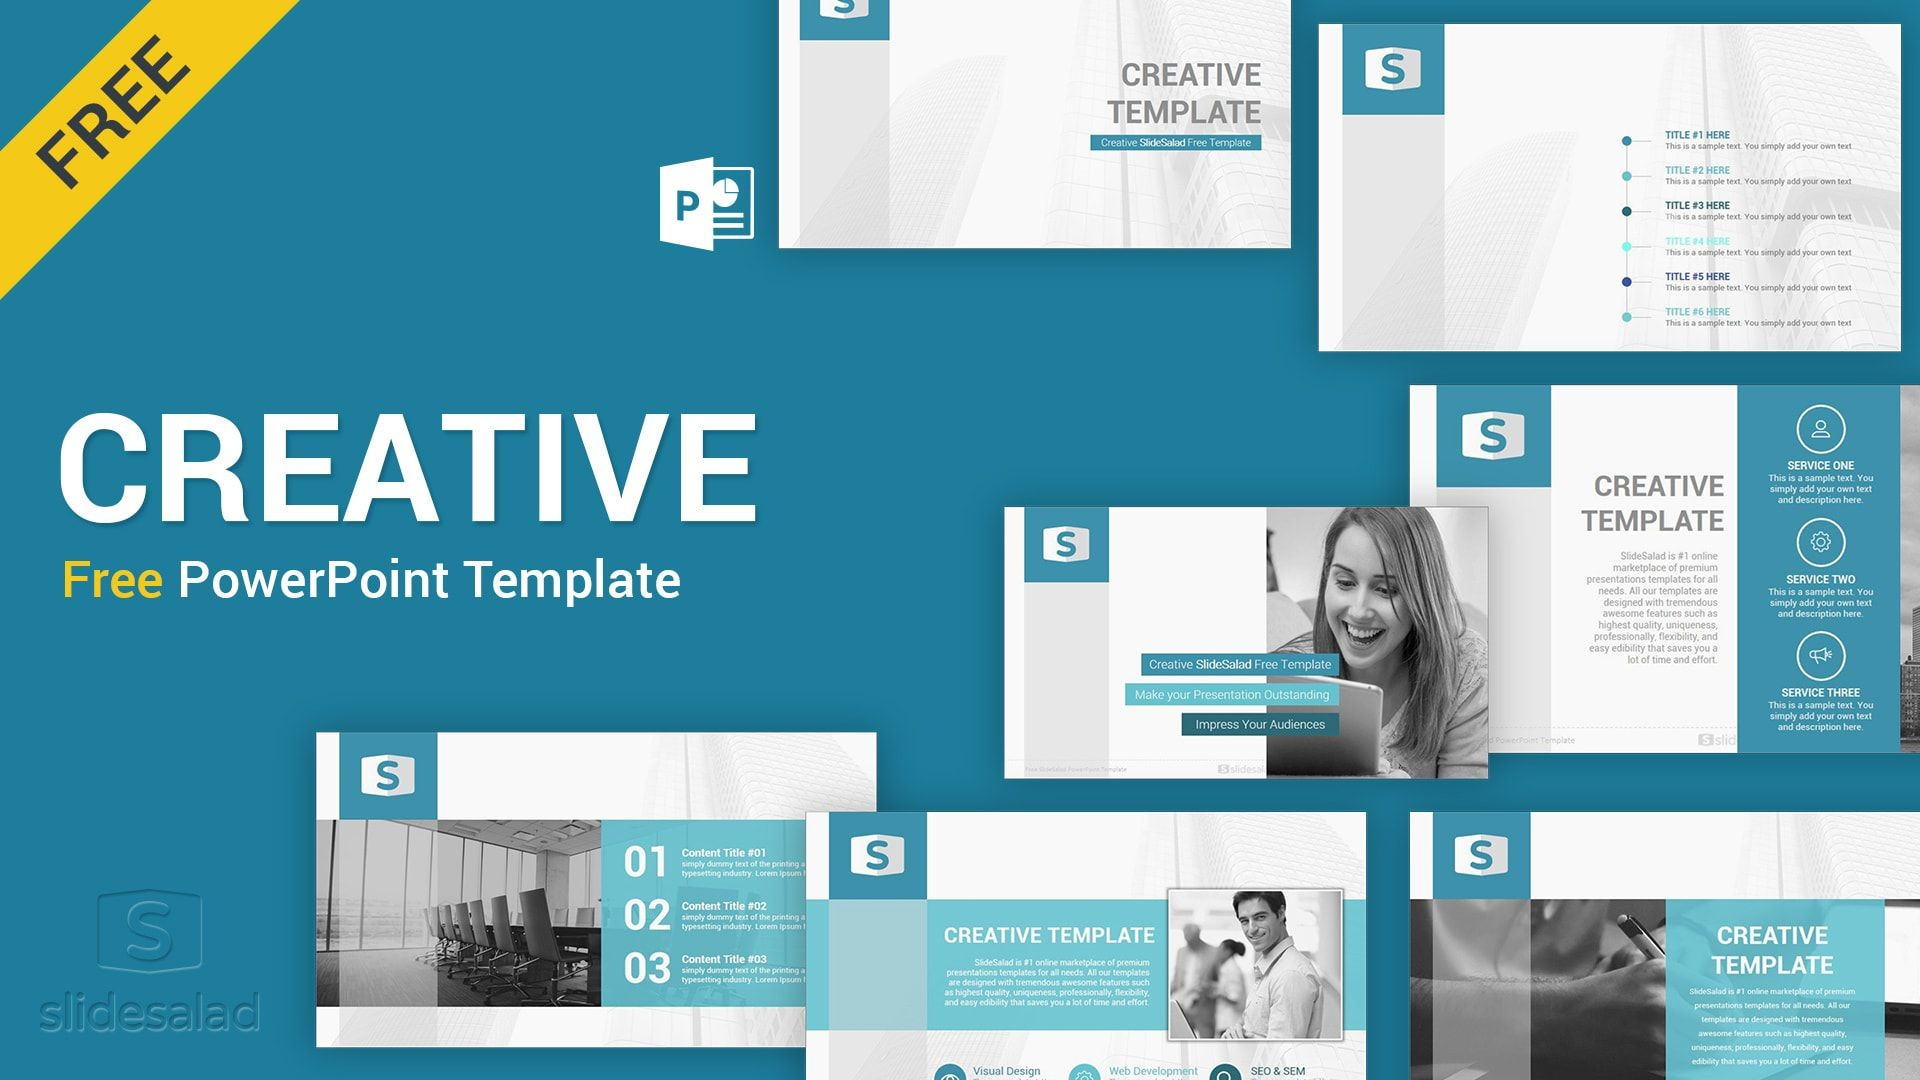 006 Imposing Free Powerpoint Presentation Template Idea  Templates 22 Slide For The Perfect Busines Strategy Download Engineering1920